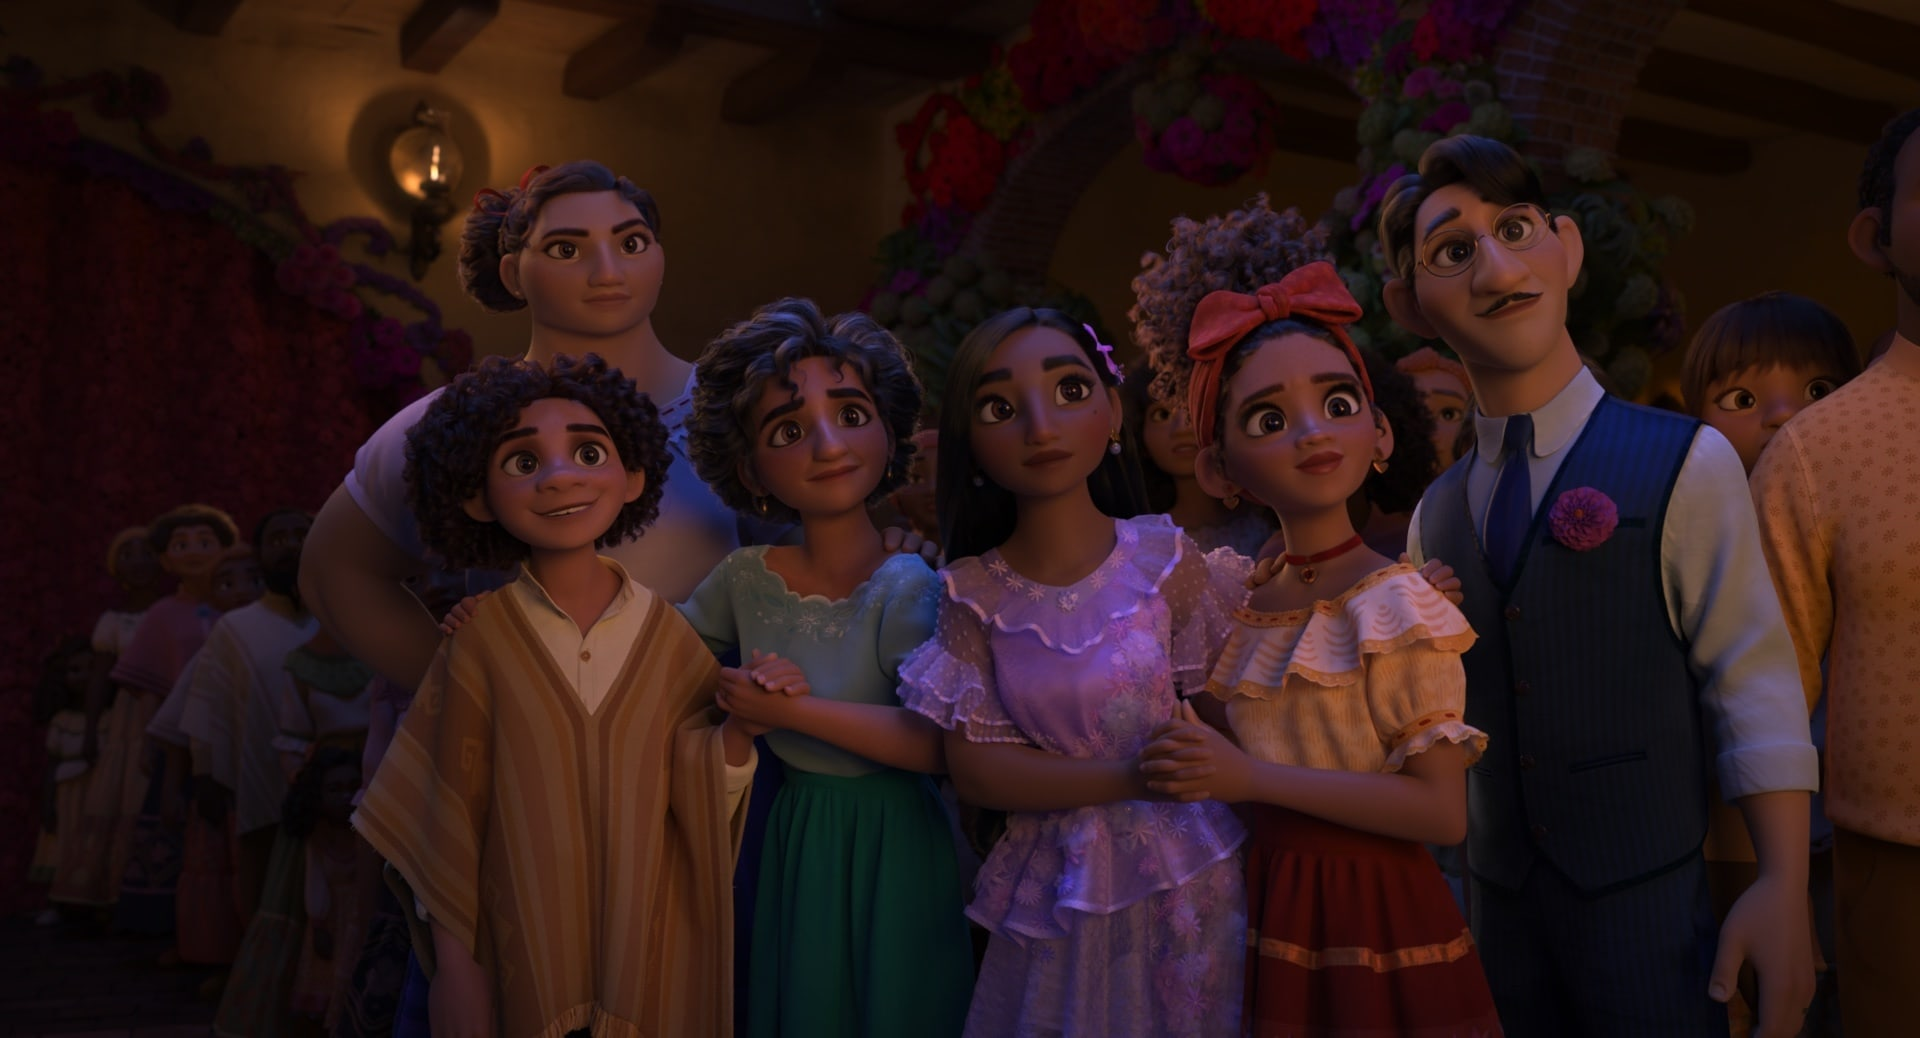 From left: Antonio, Luisa, Julieta, Isabela, Dolores, and Agustín